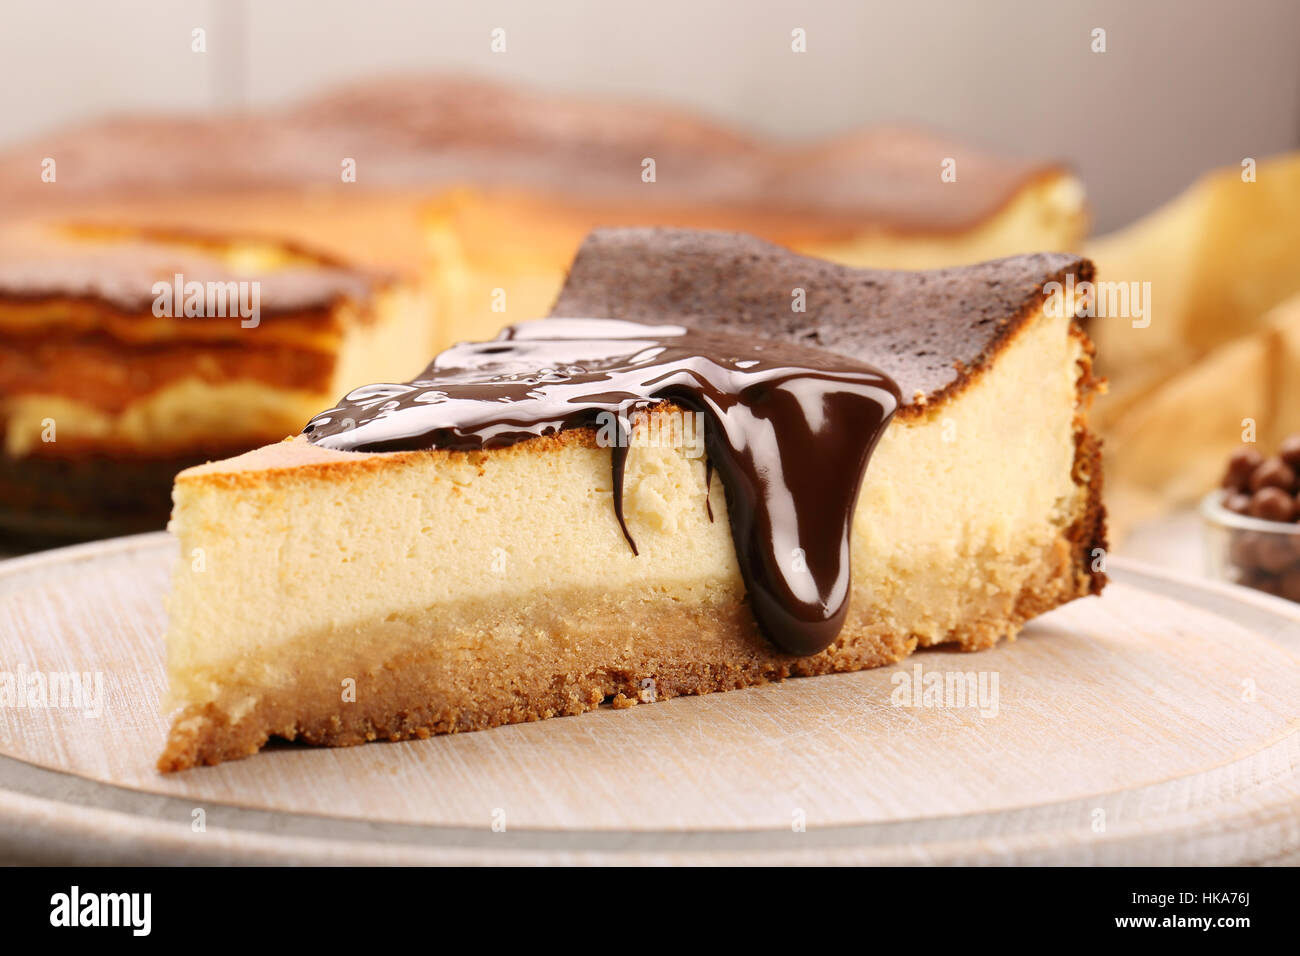 Cheesecake slice with melted chocolate - Stock Image